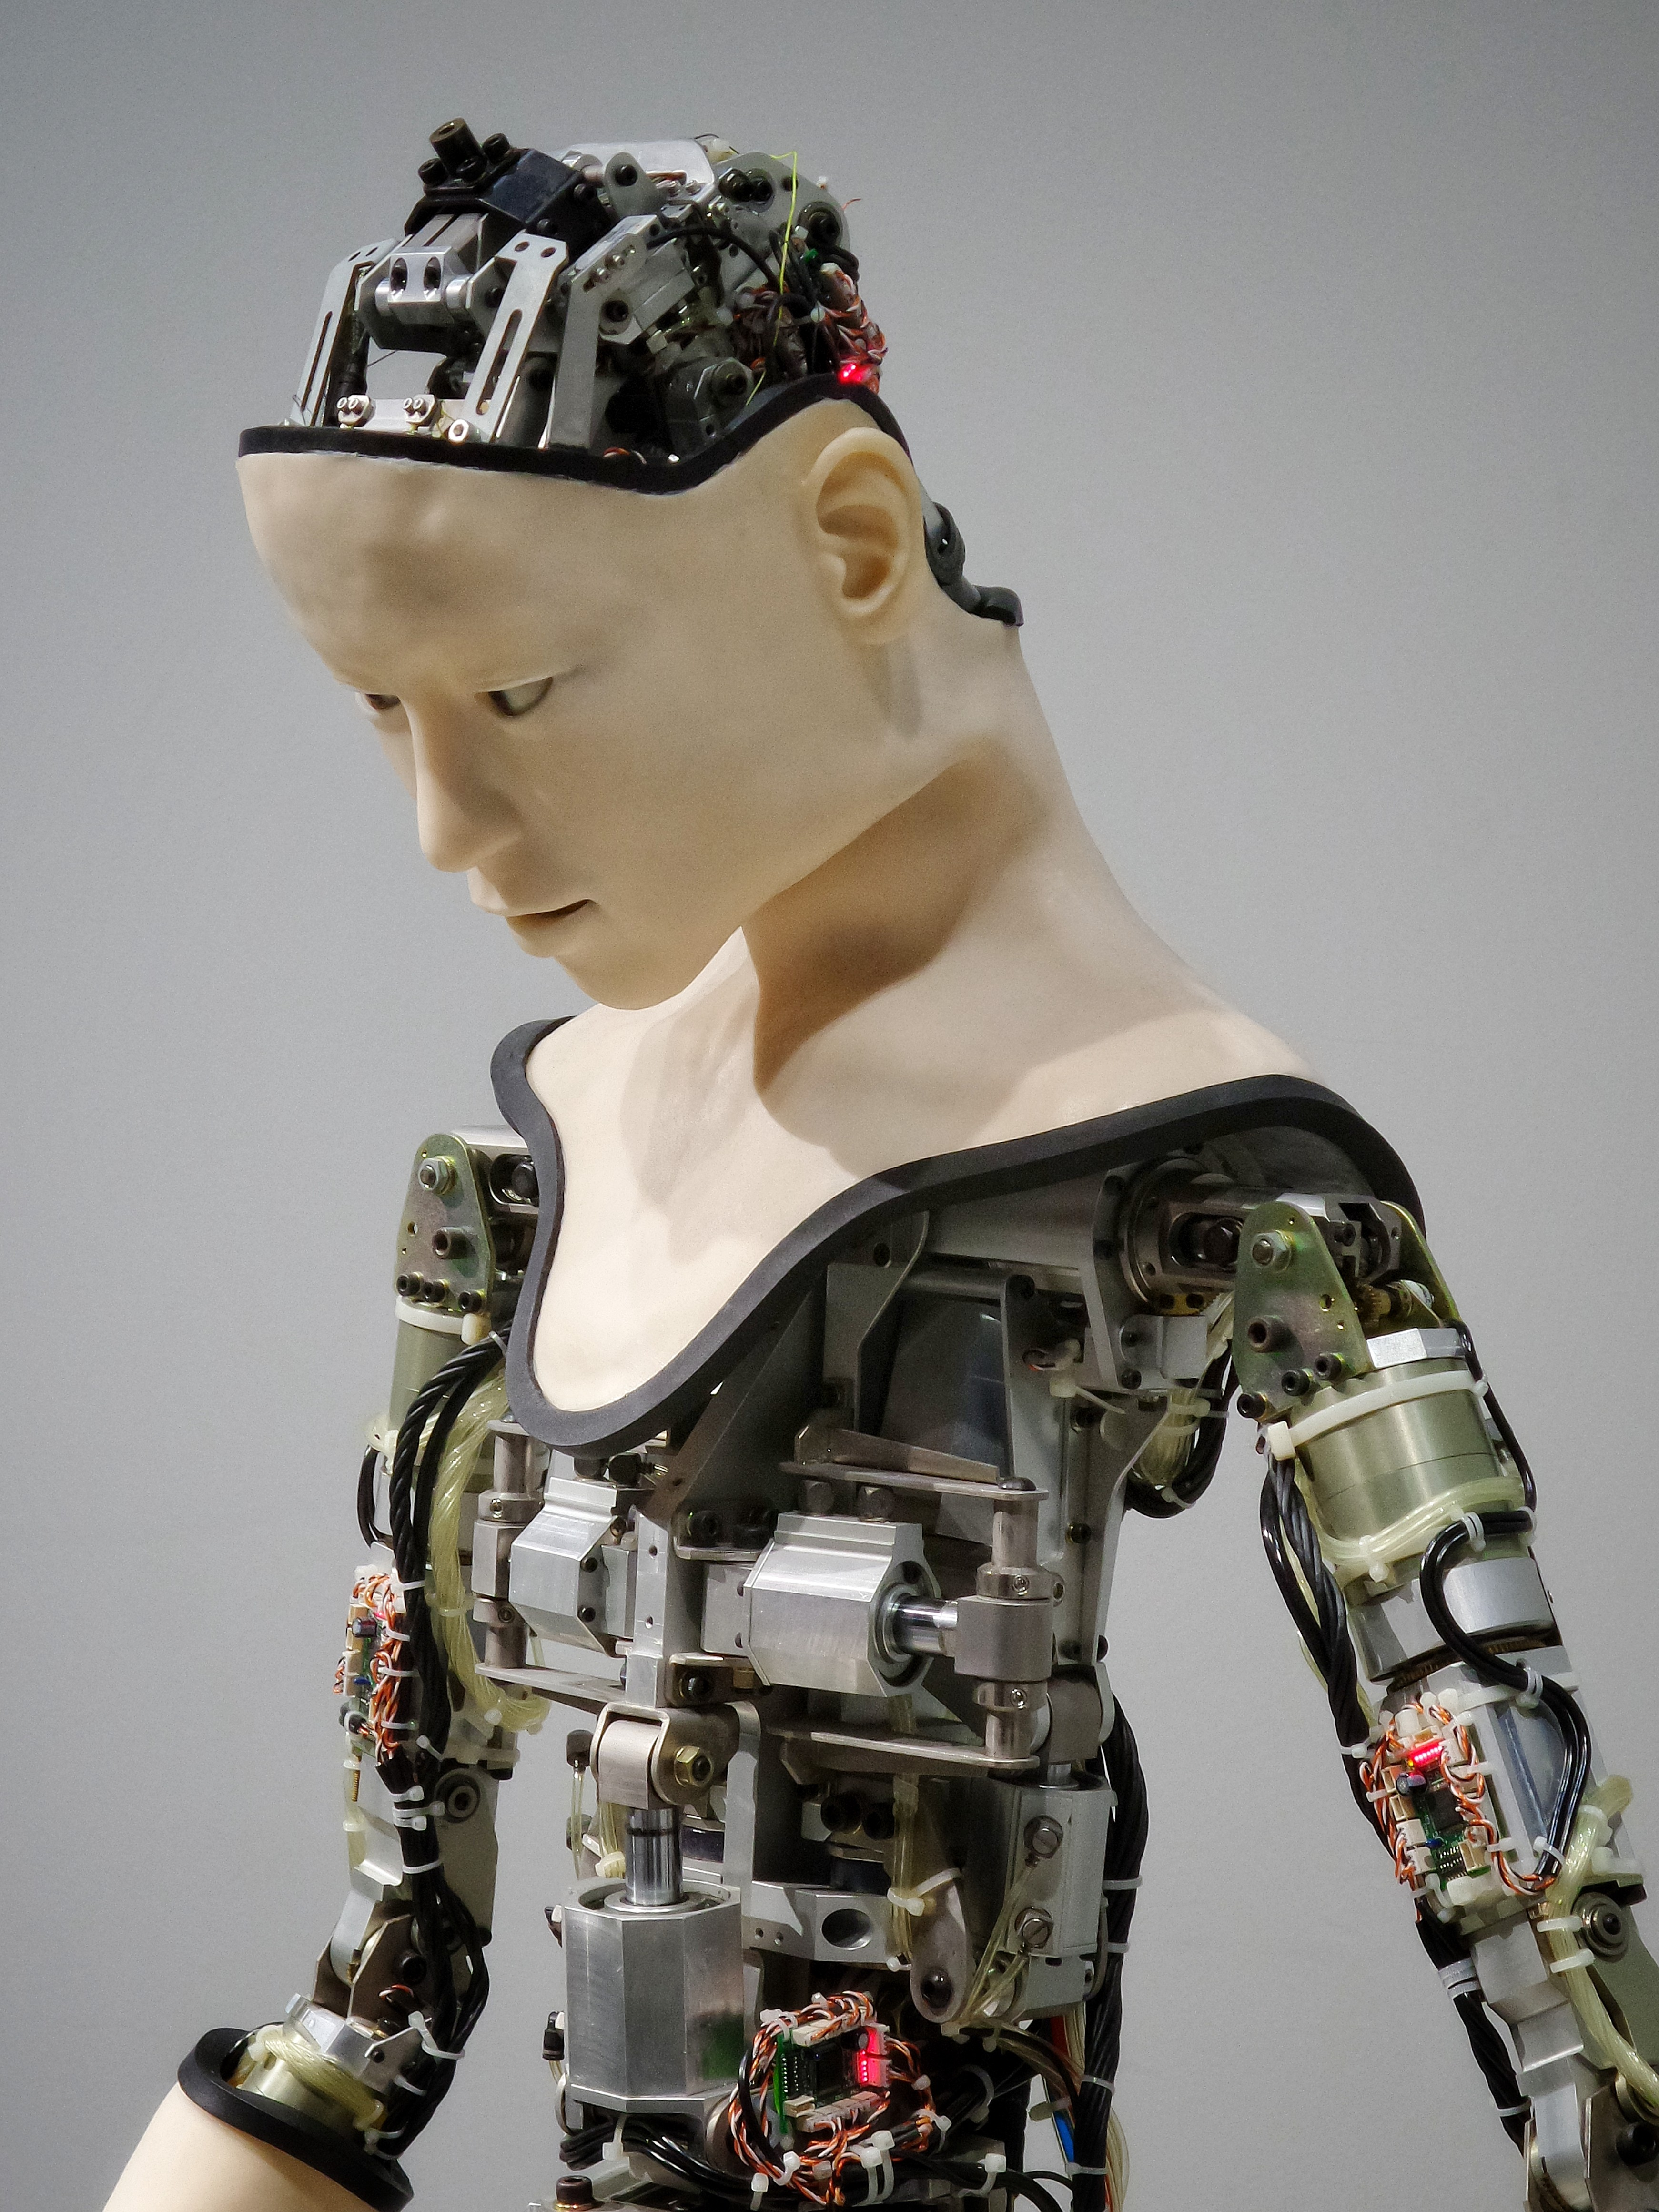 Challenges in AI